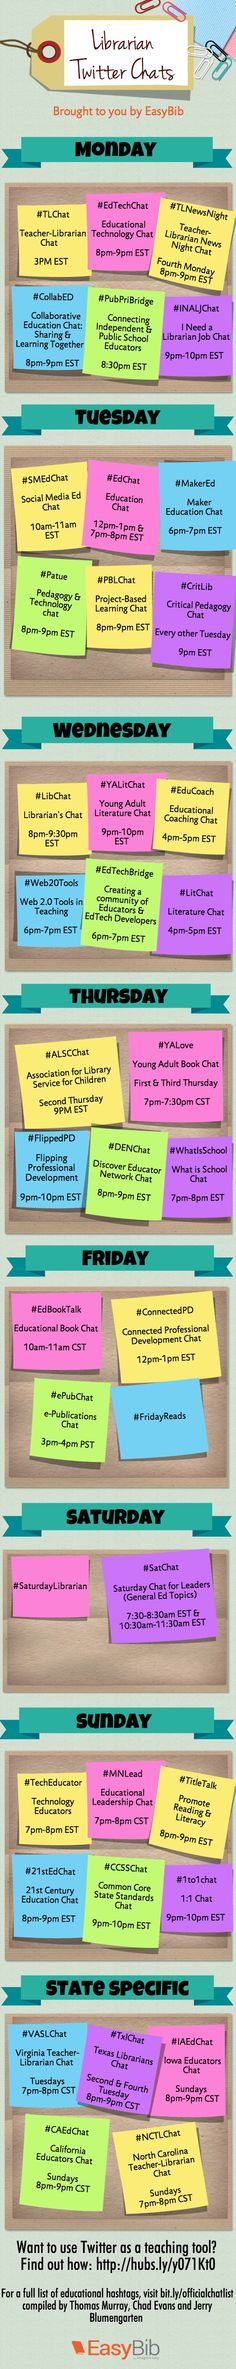 Librarian Twitter Chats | Piktochart Infographic Editor